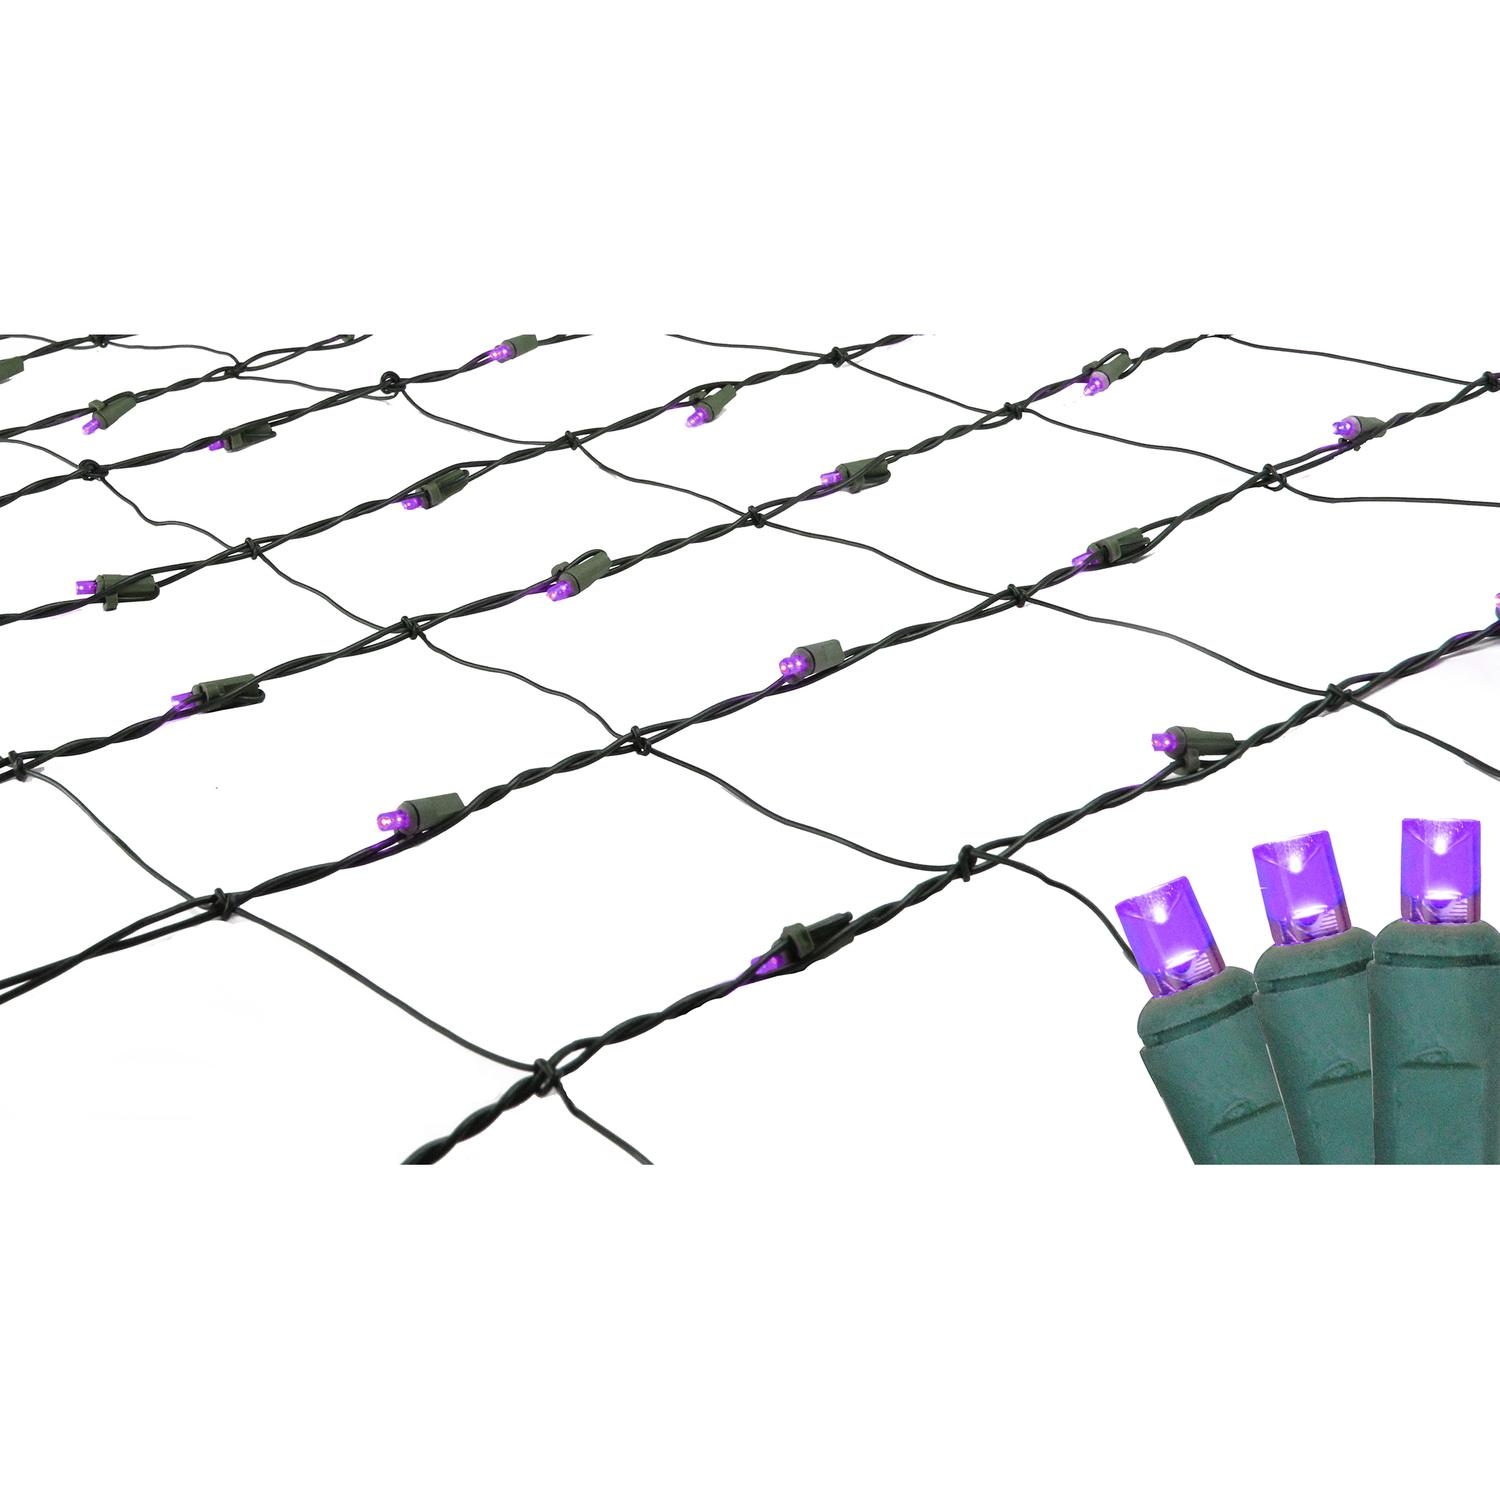 4' x 6' Purple LED Net Style Christmas Lights - Green Wire